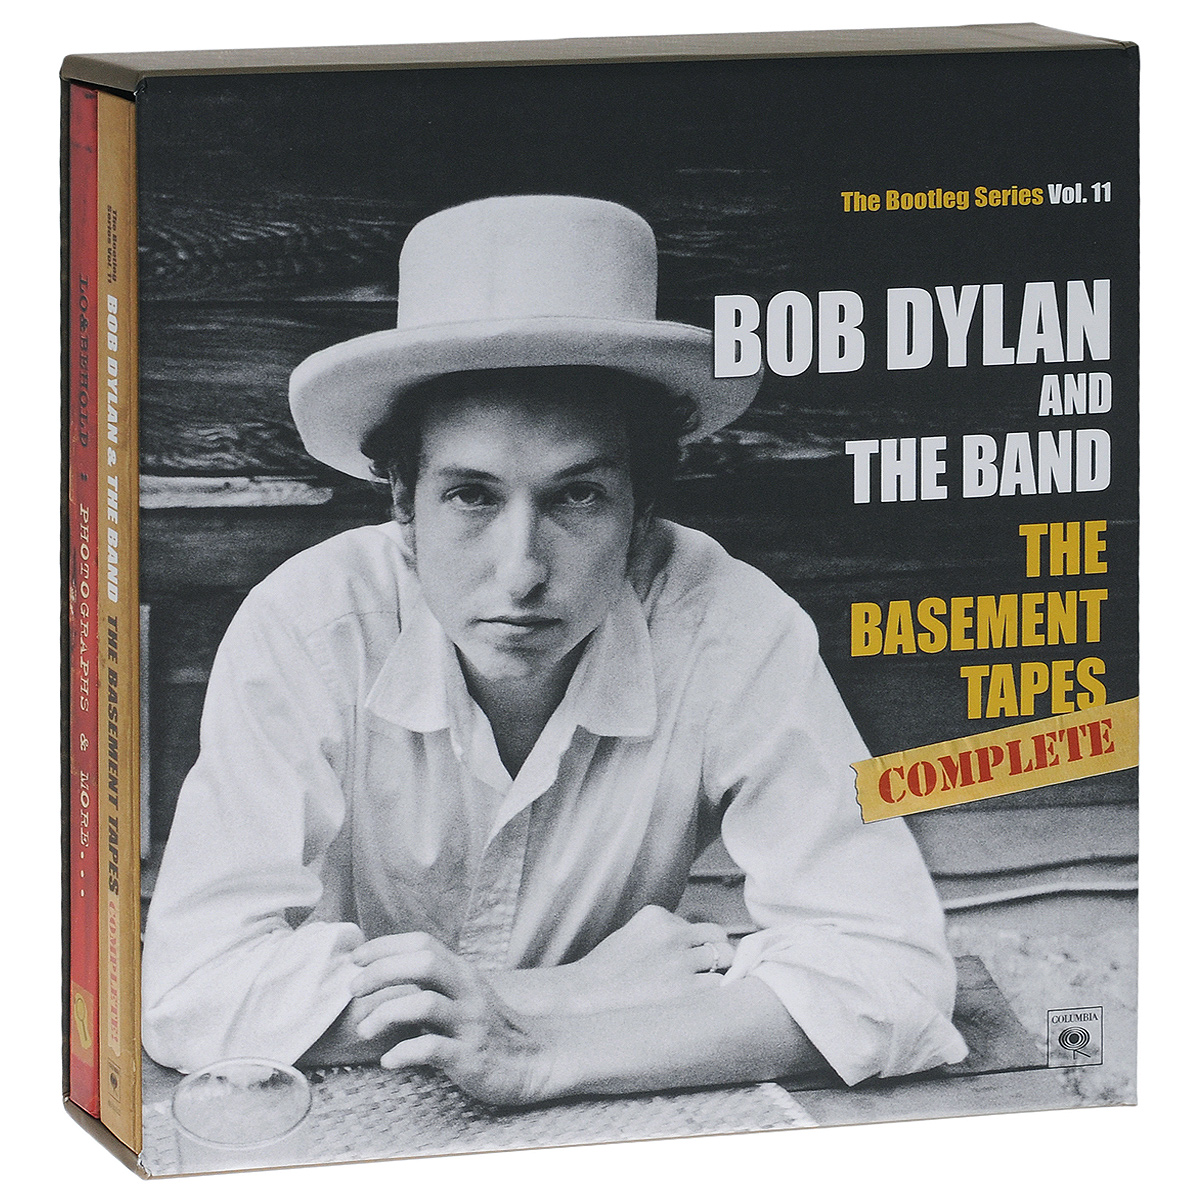 Bob Dylan And The Band Bob Dylan and The Band. The Bootleg Series Vol. 11: The Basement Tapes Complete. Limited Deluxe Edition (6 CD) cd bob dylan the bootleg series volumes 1 3 rare unreleased 1961 1991